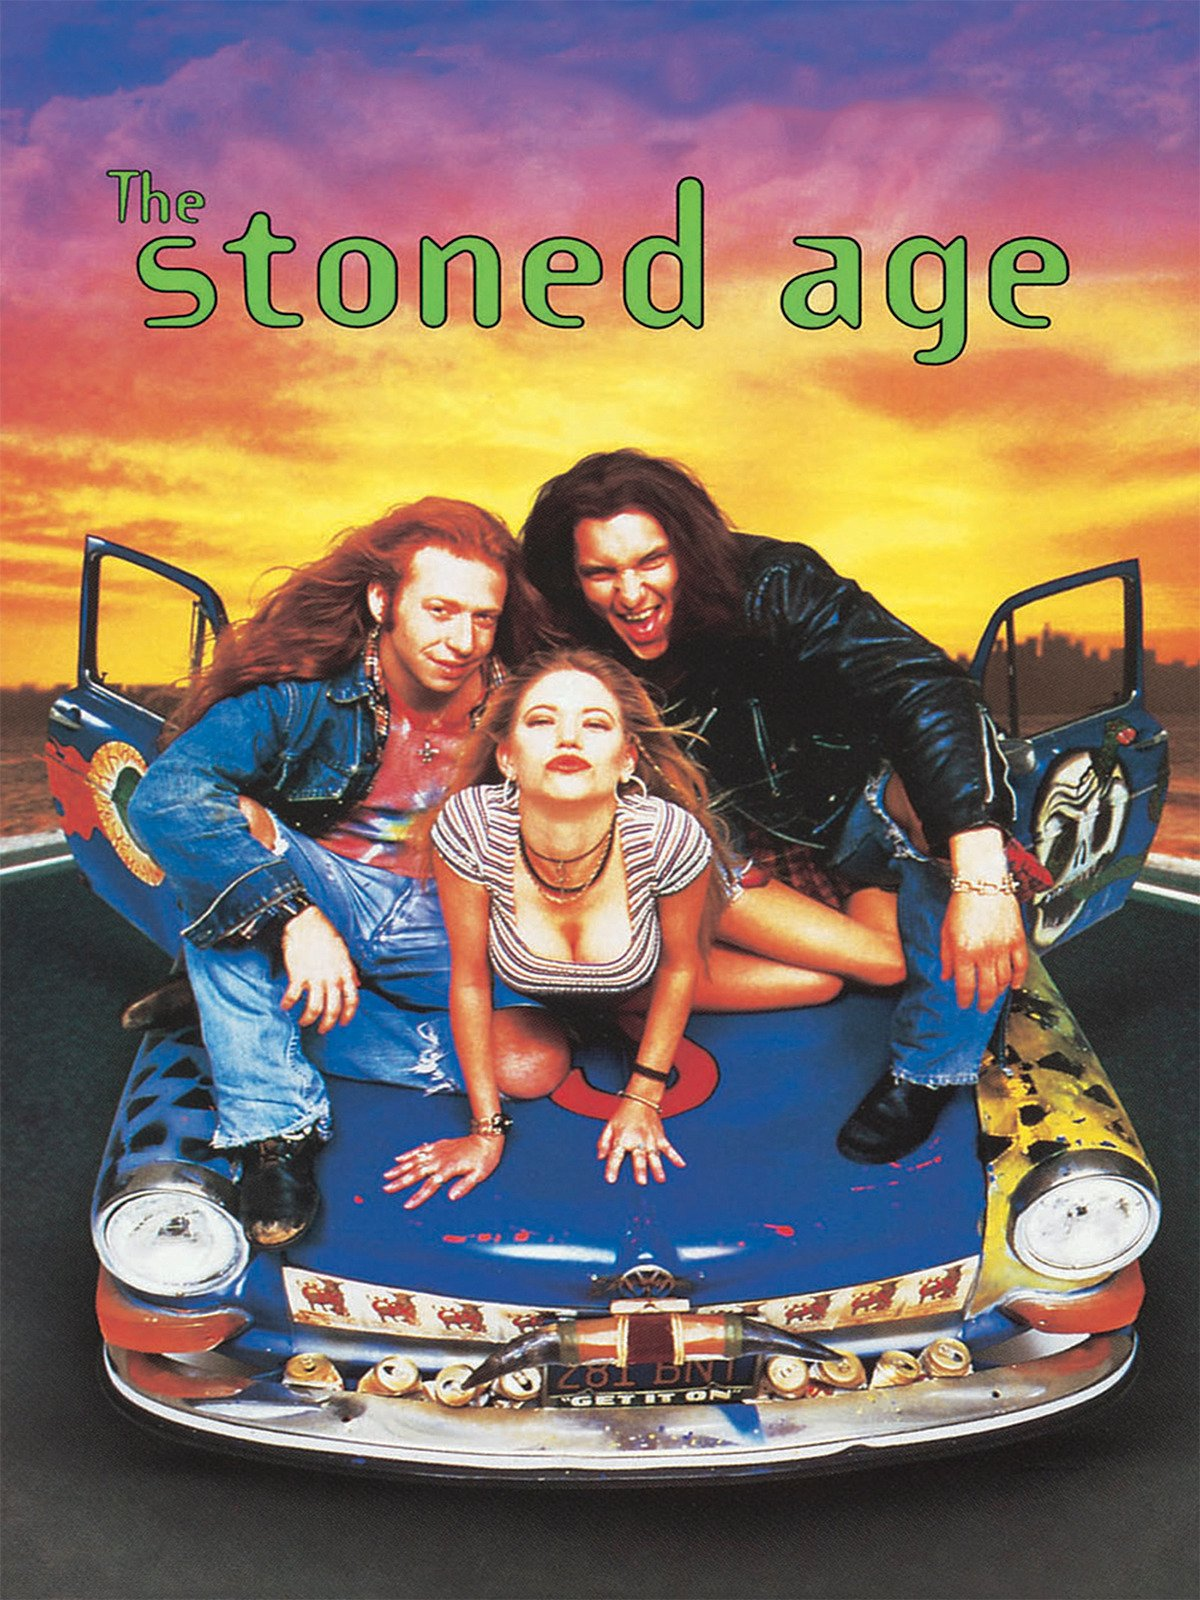 The Stoned Age (1994) on Amazon Prime Video UK